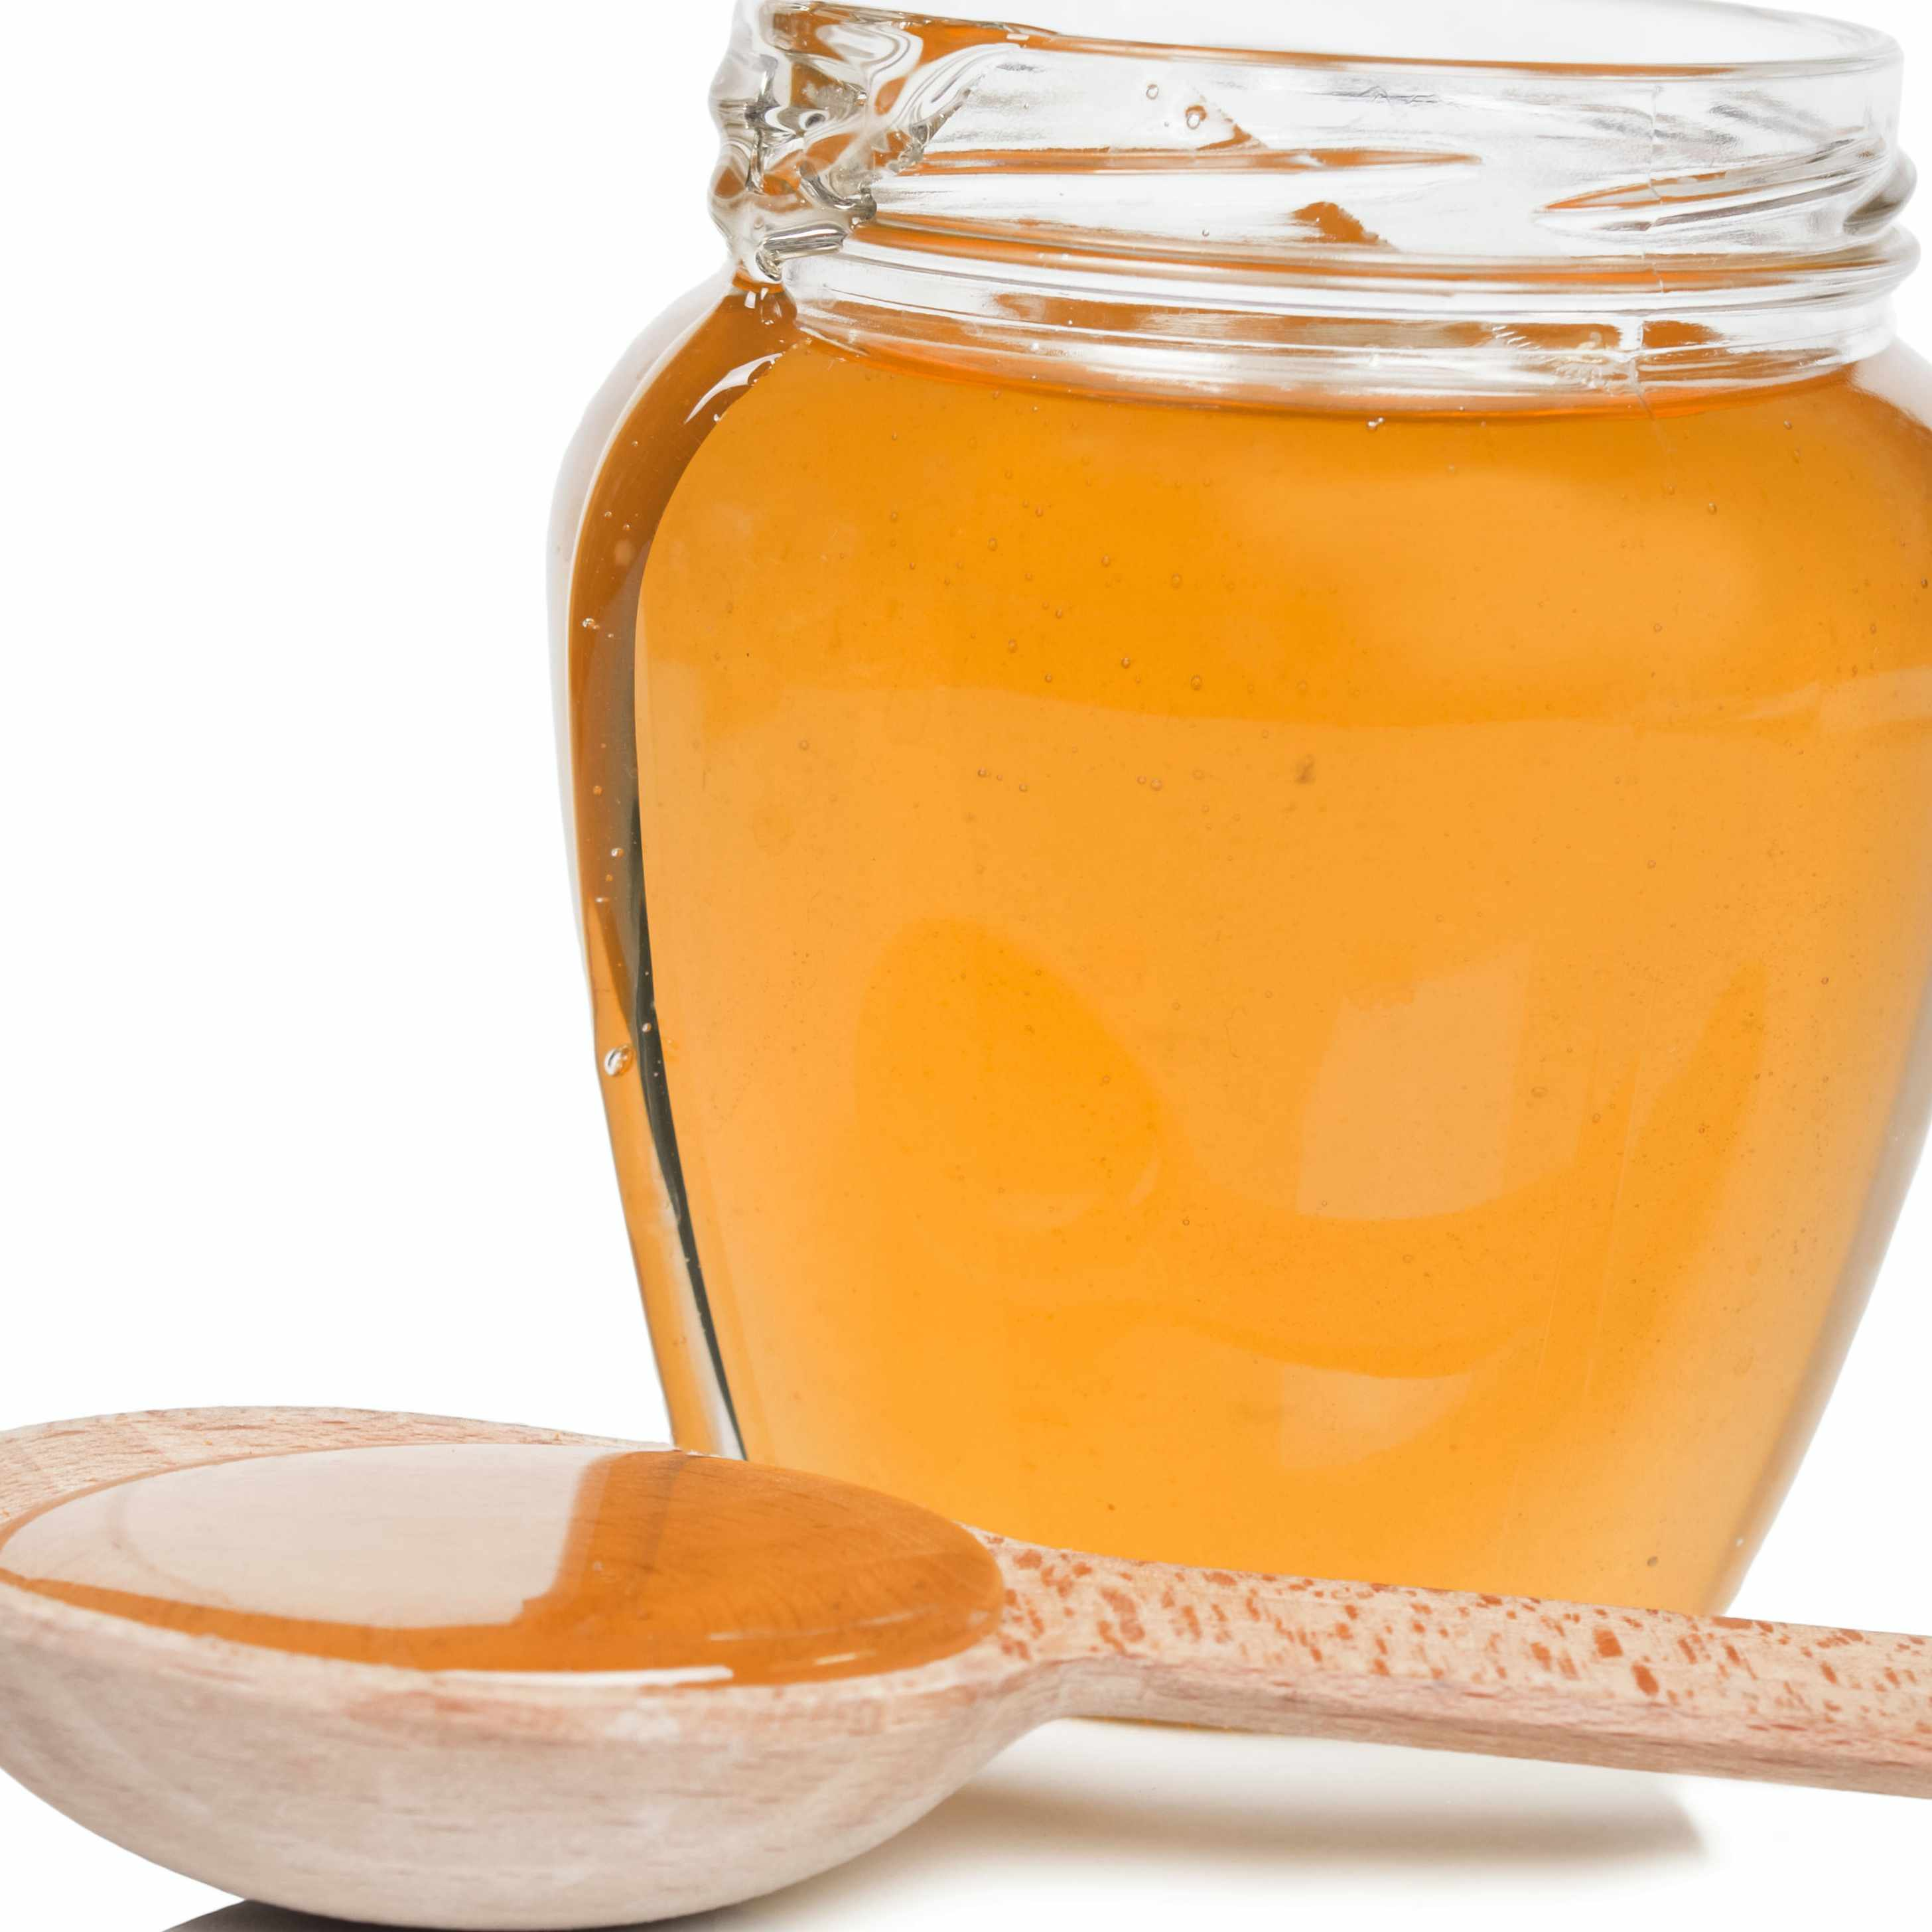 a jar of honey on a table with a wooden spoon